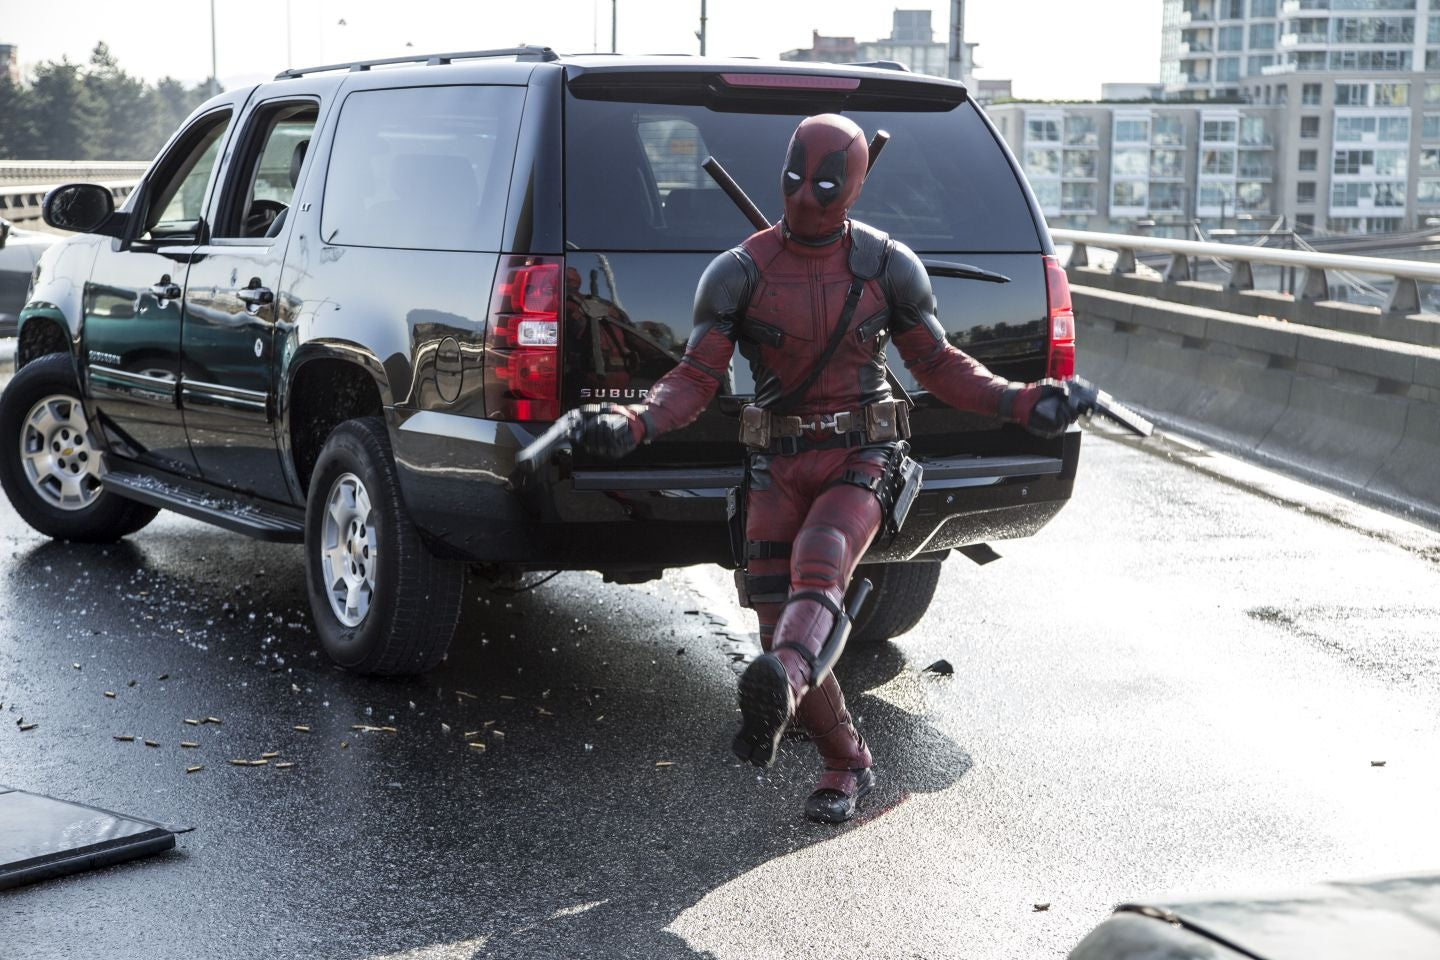 X-Men: Apocalypse director Bryan Singer says there is definitely room for a Deadpool crossover | News | Culture | The Independent